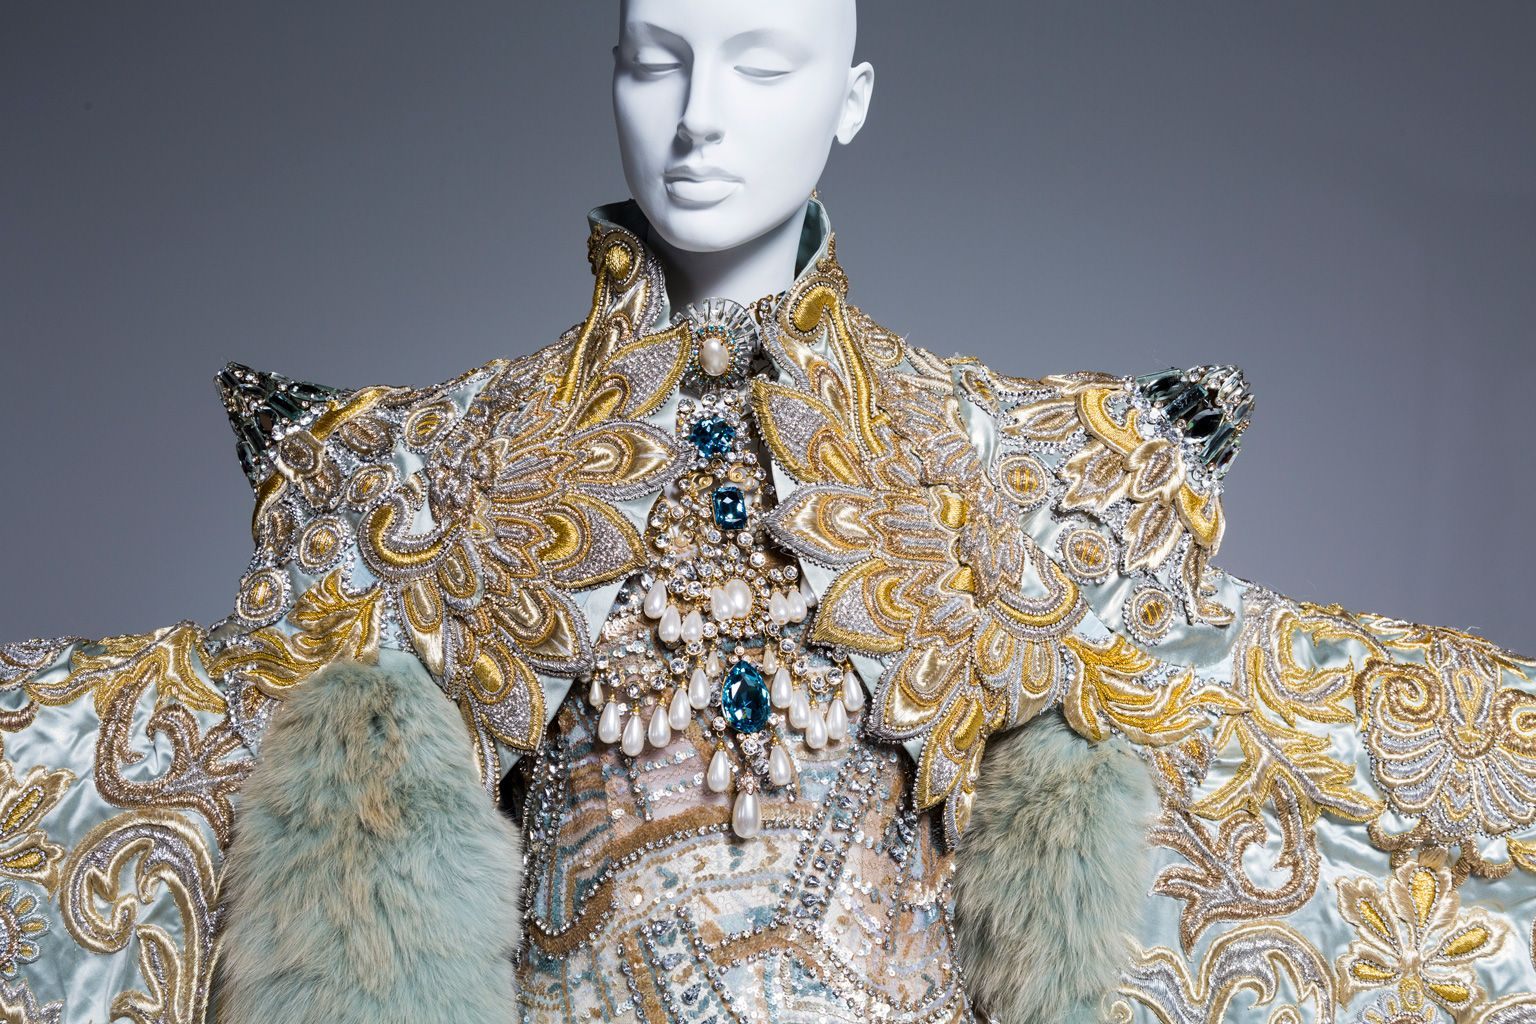 Scad Fashion Show 2020.Guo Pei S Stunning Gowns Go On Display In Her First U S